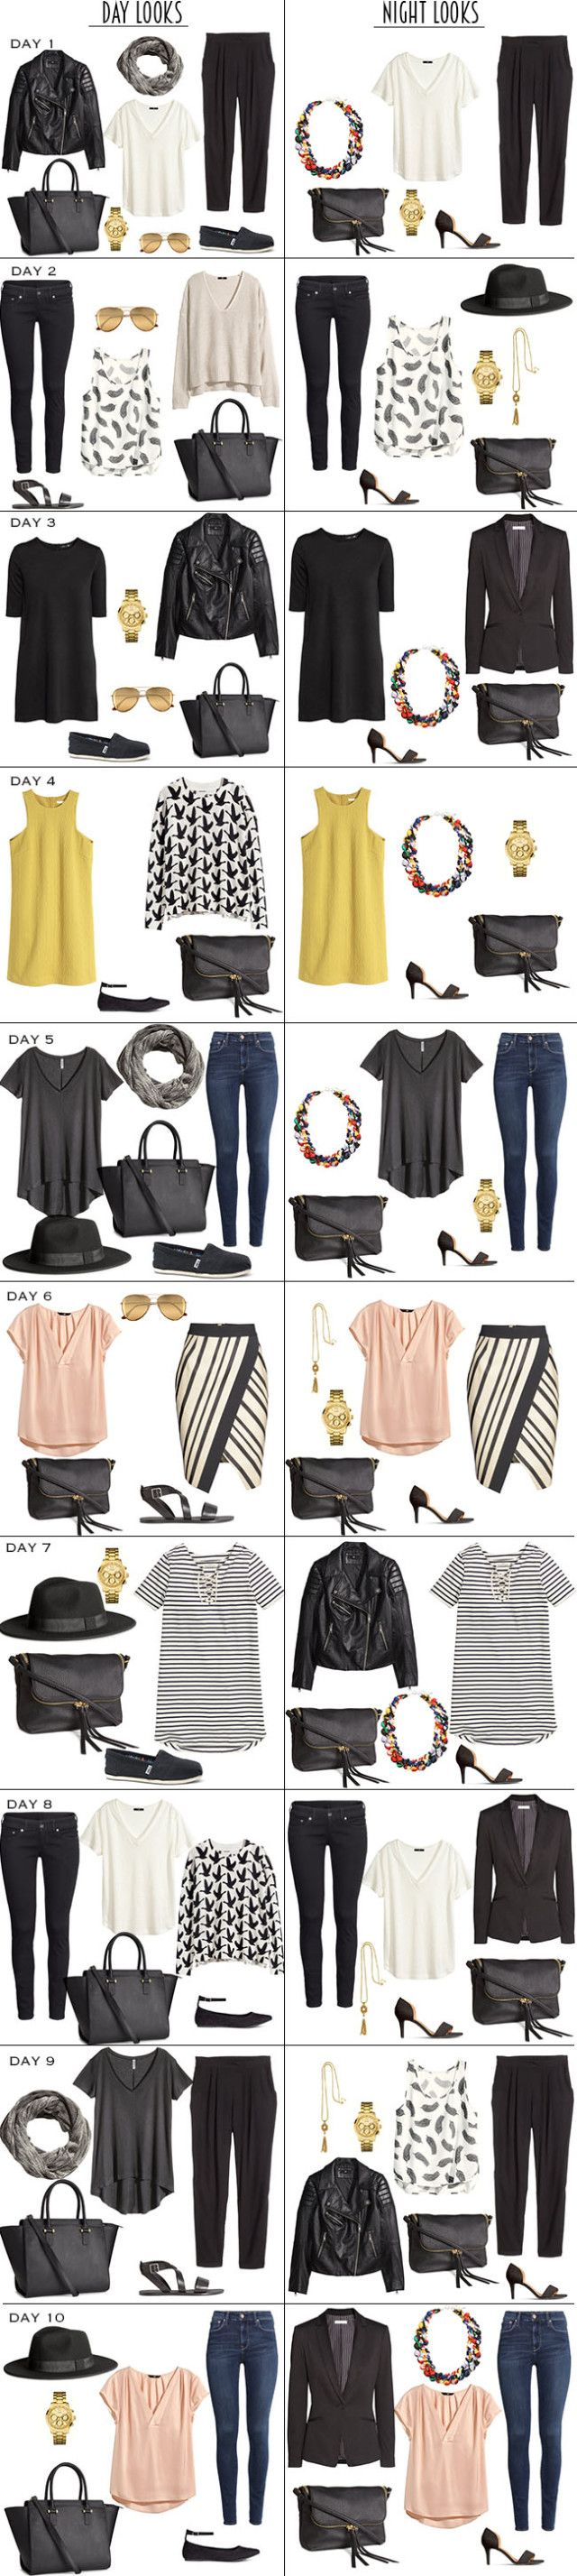 10 Day Vacation Packing list with 10 Day To Night Looks